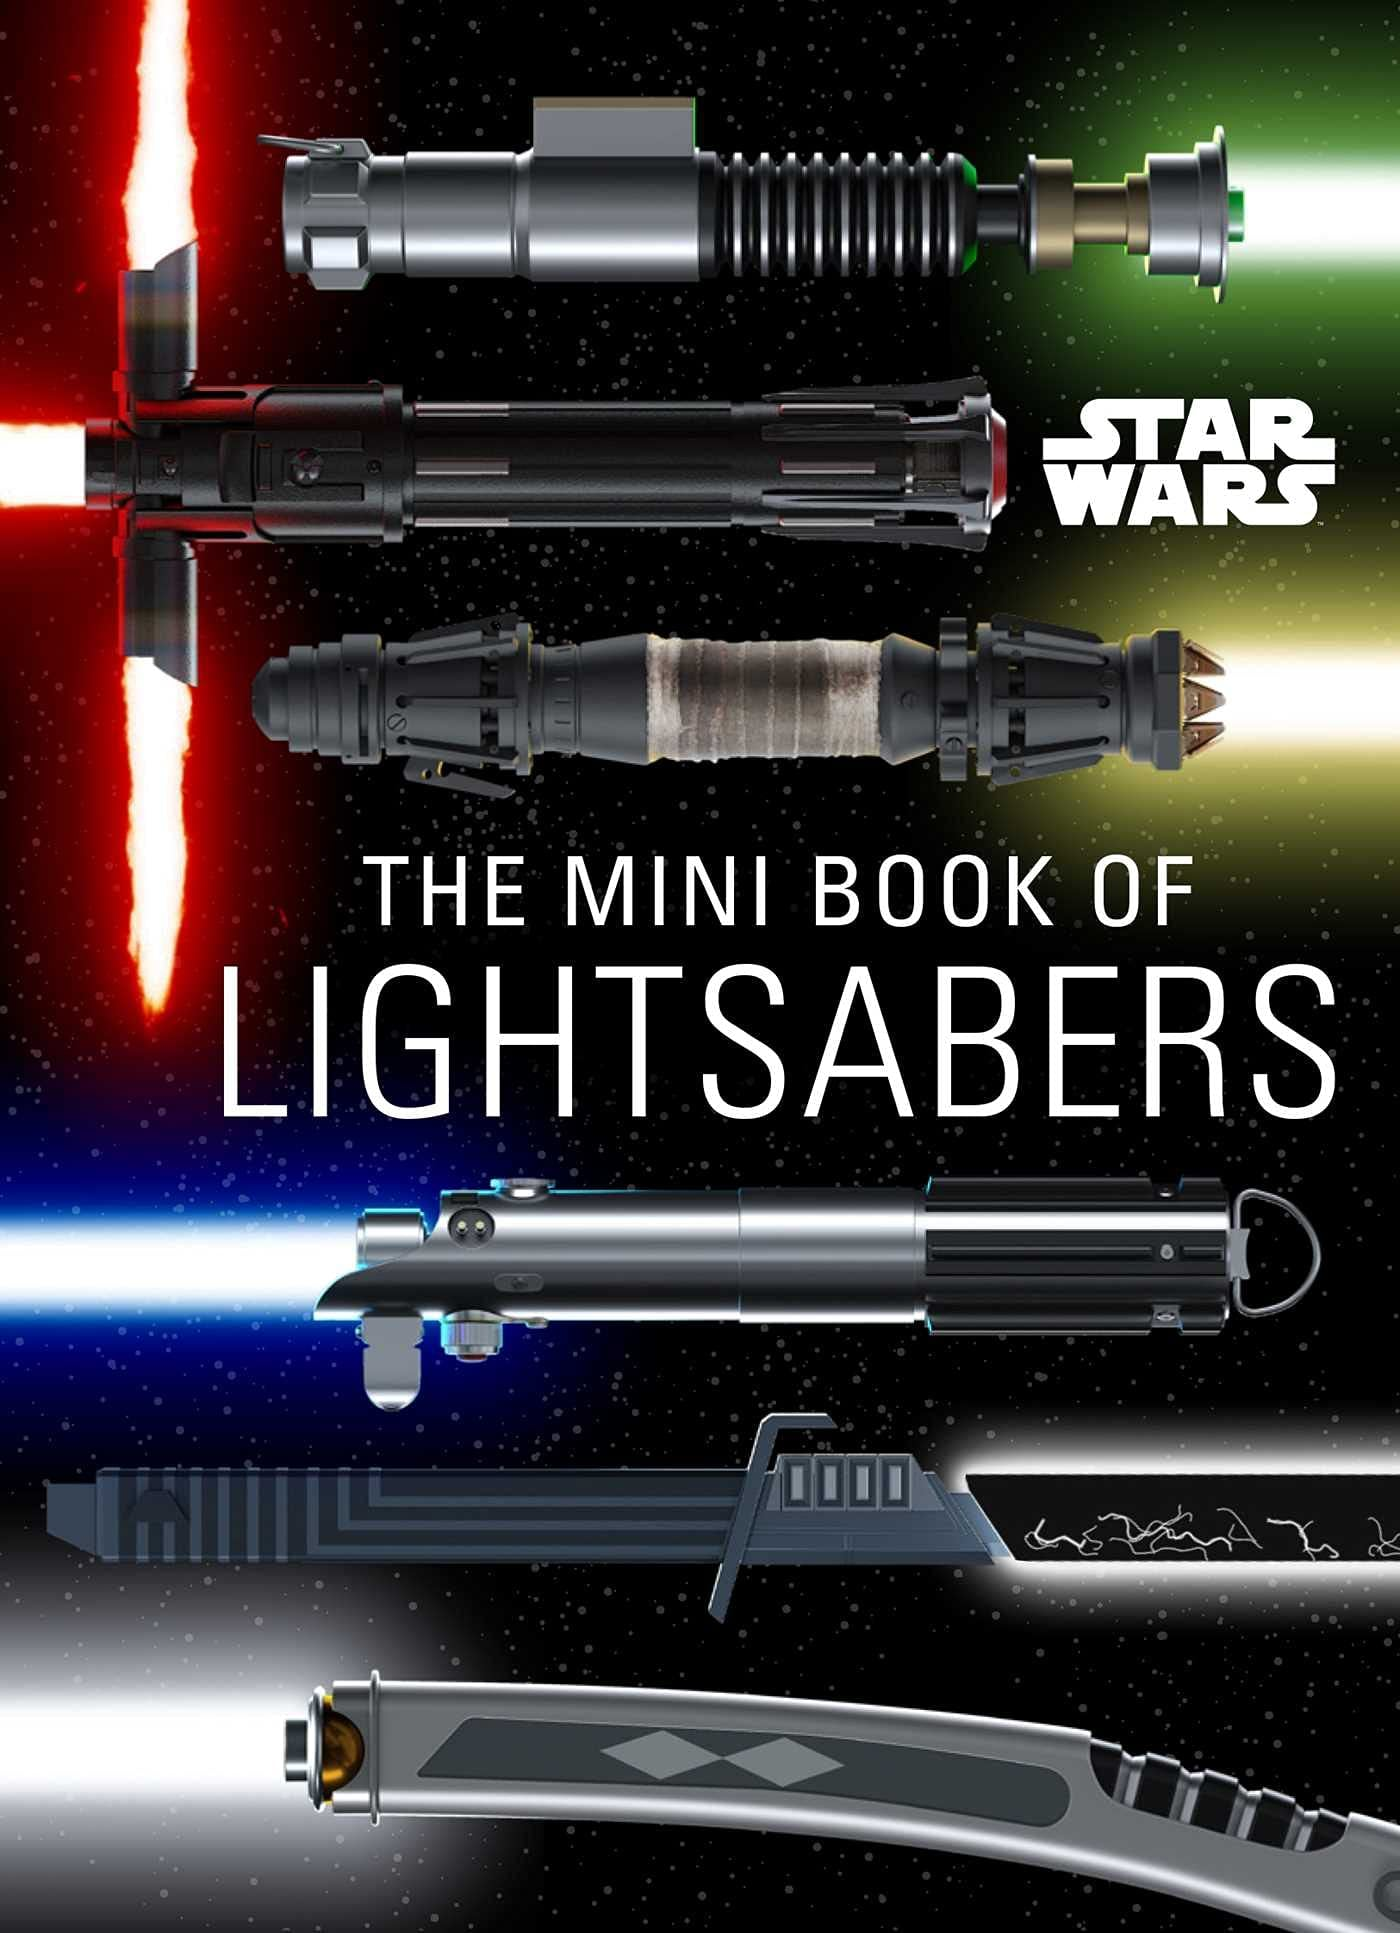 Star Wars: The Mini Book of Lightsabers